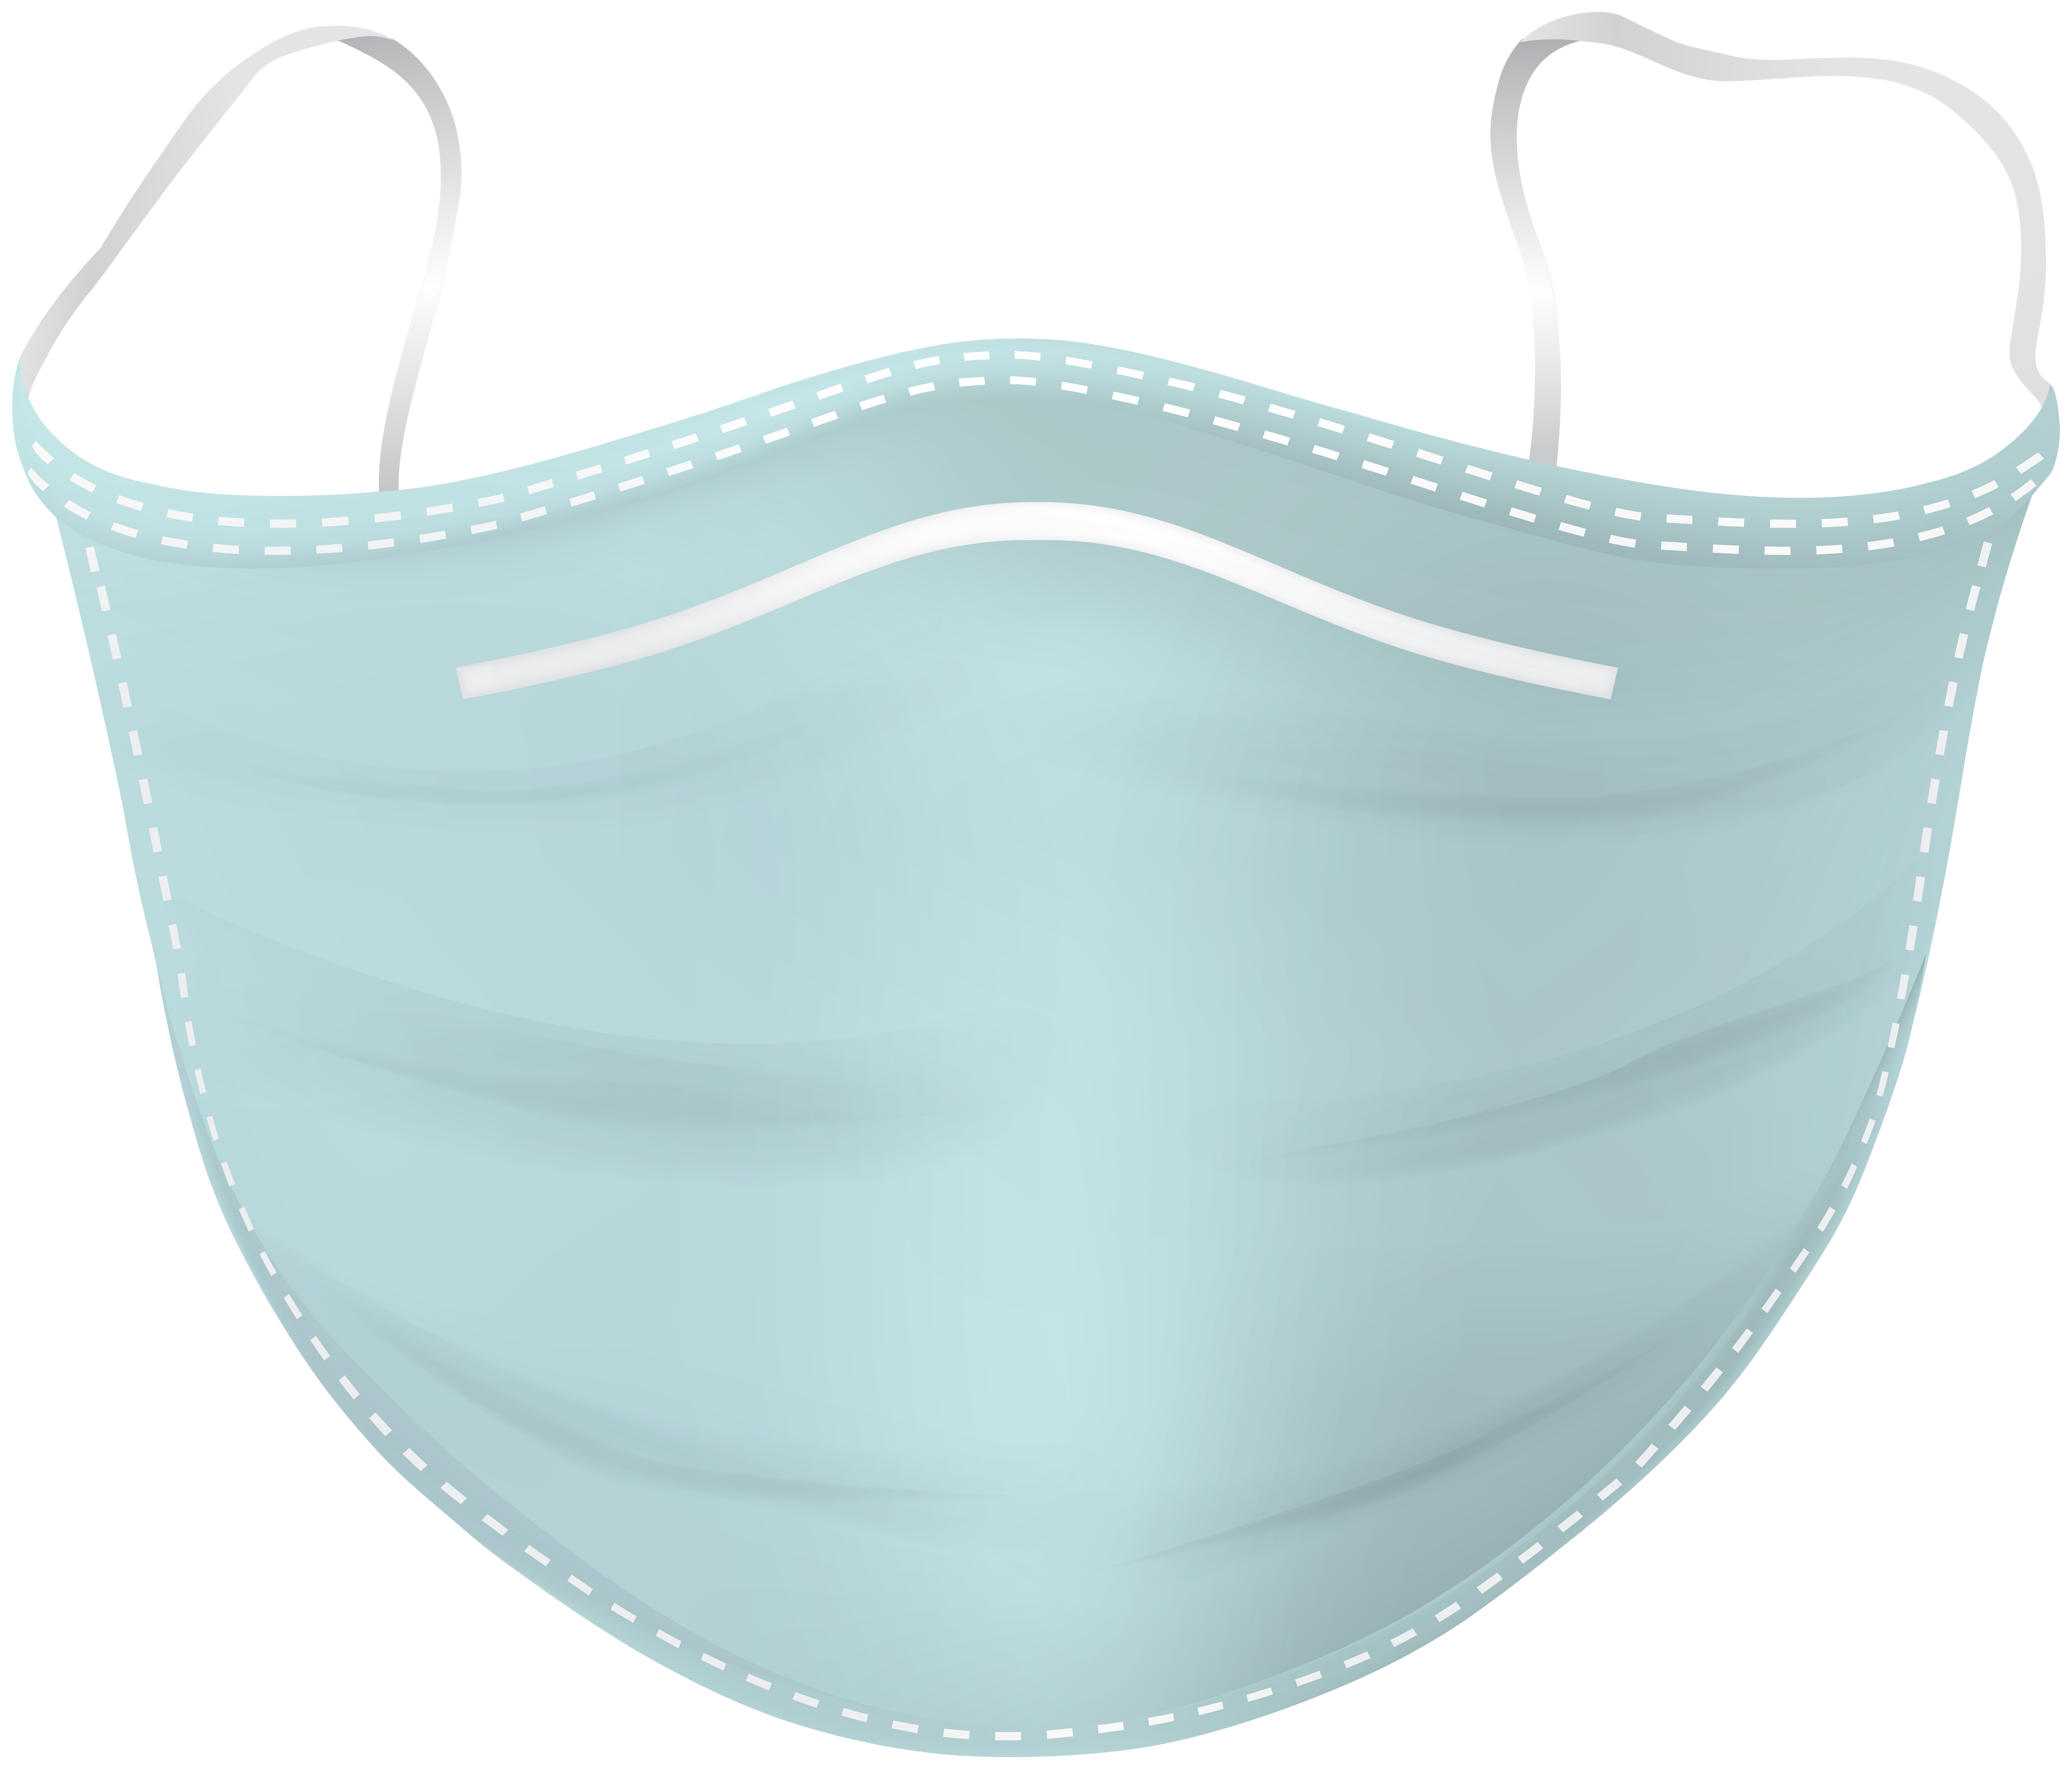 Surgical Mask Png - Surgical Medical Protective Mask PNG Clip Art - Best WEB Clipart